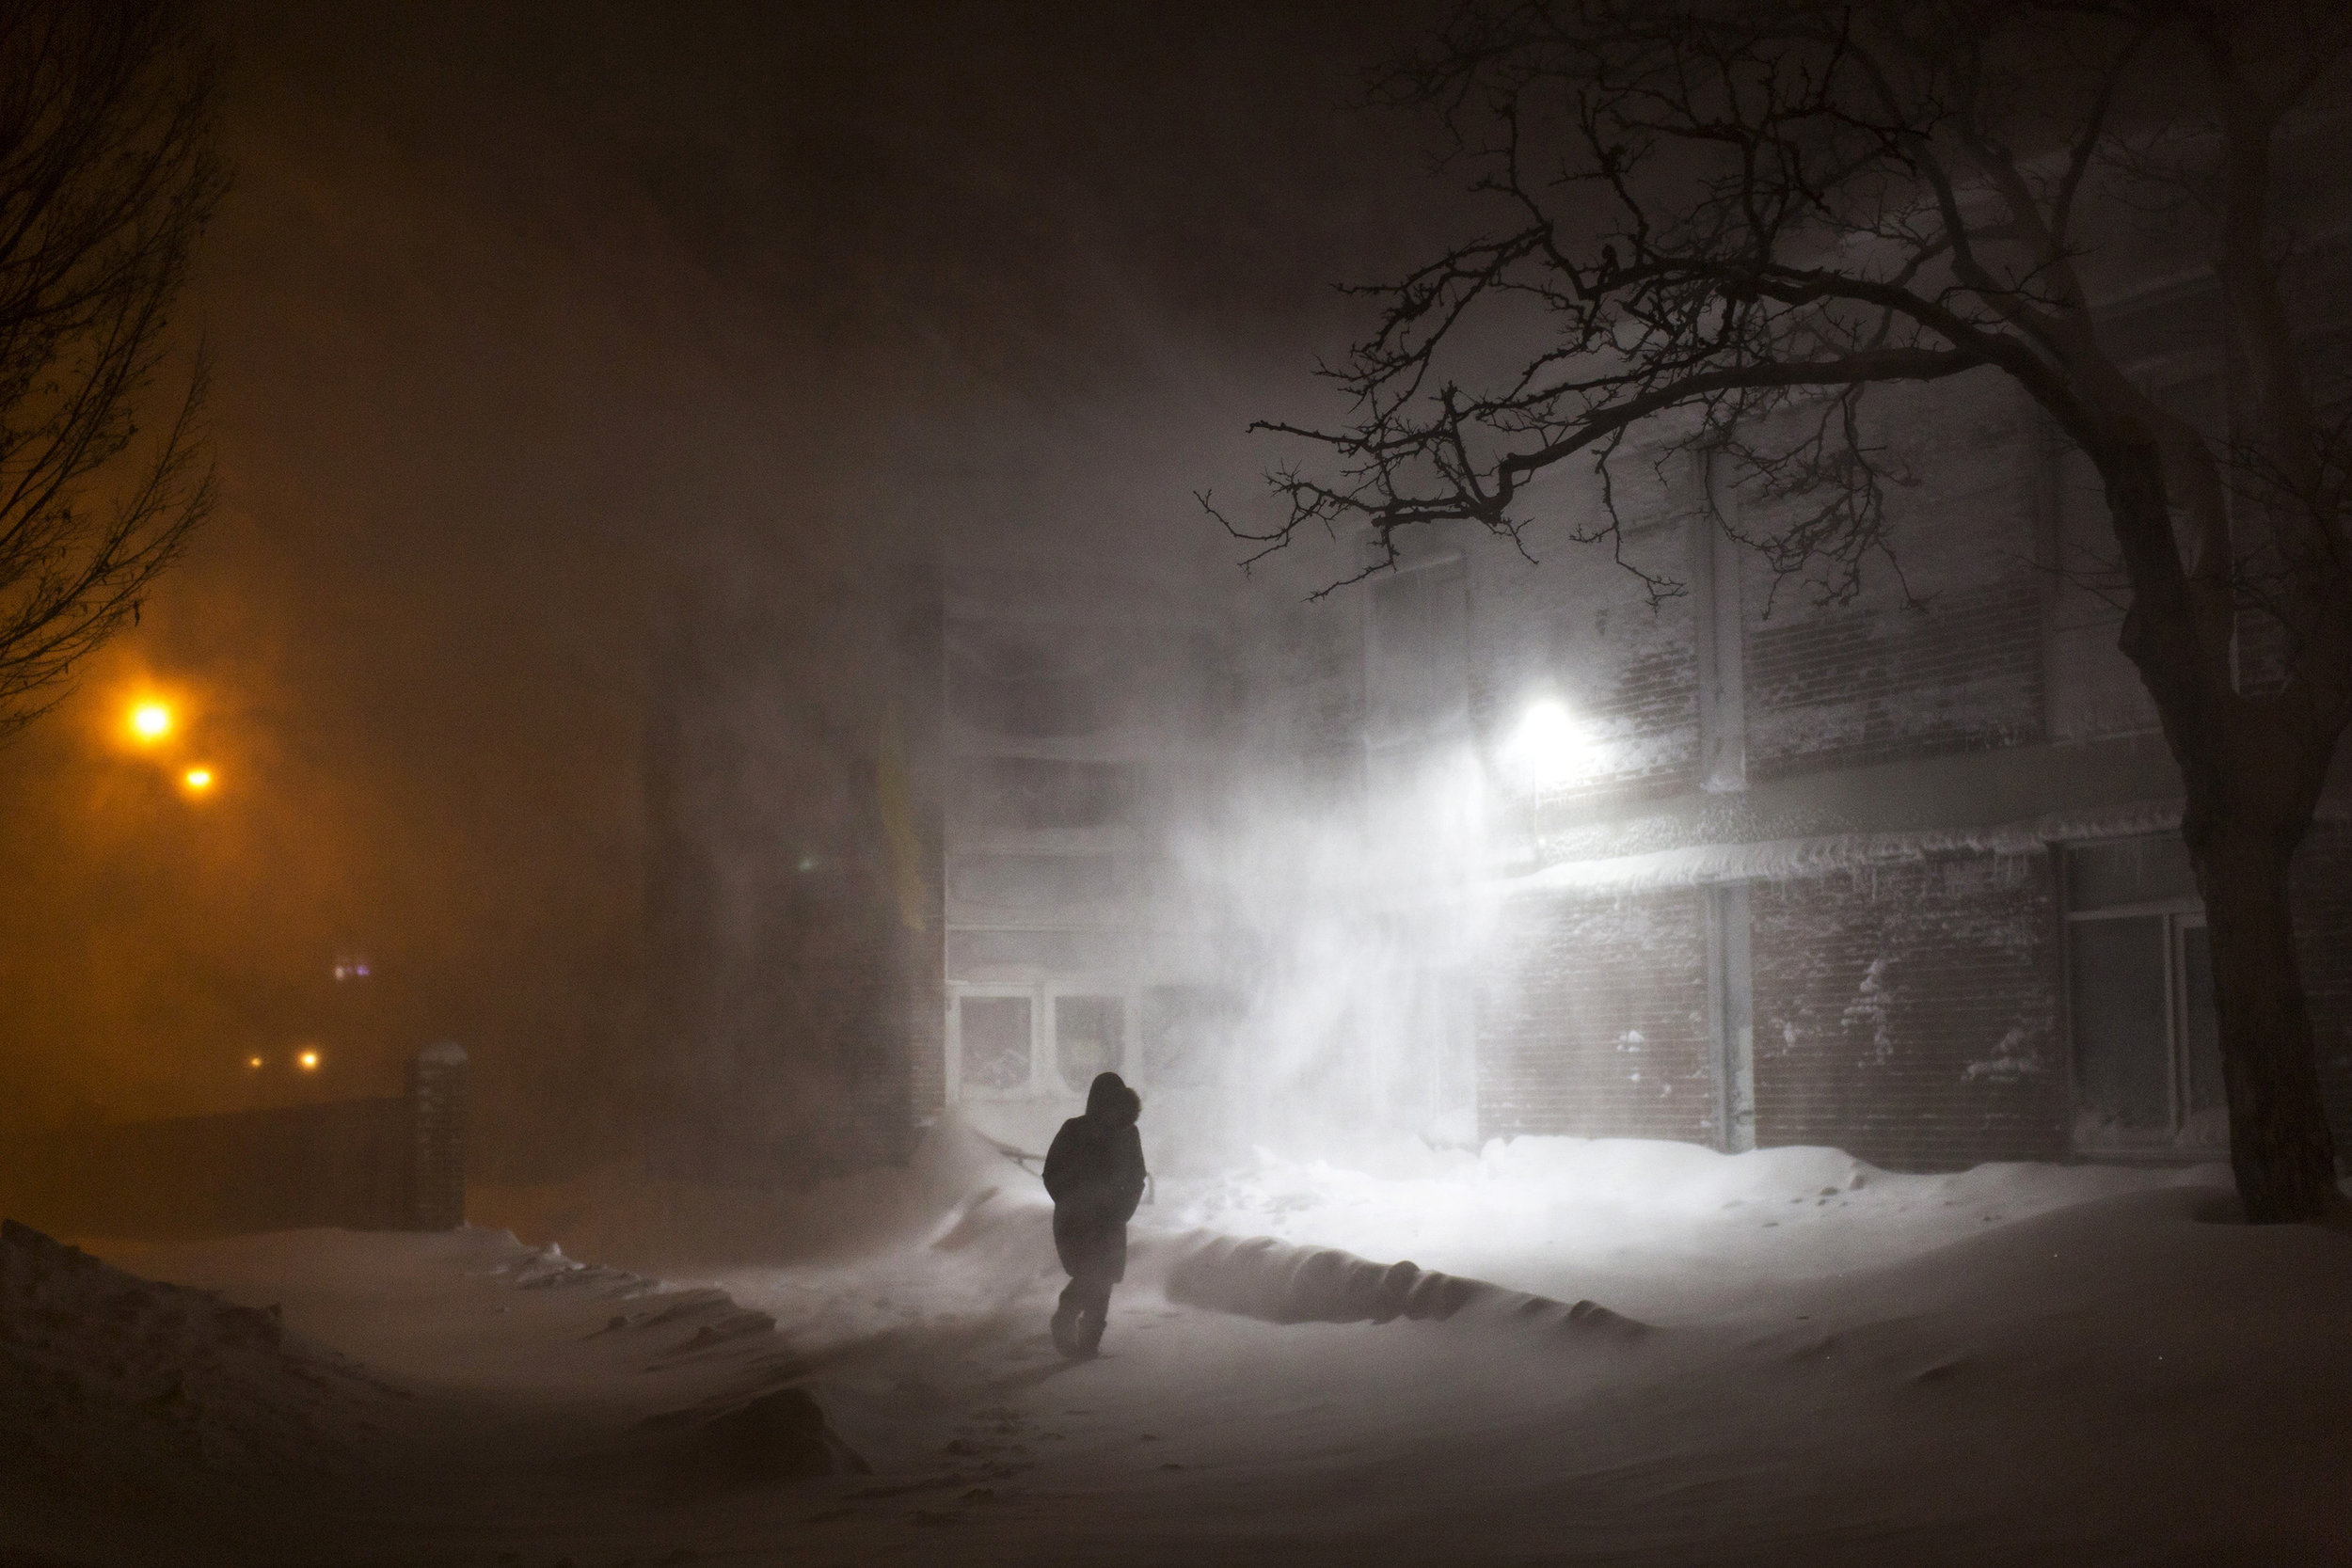 A woman walks through a park in Portland, Maine during a strong winter nor'easter.